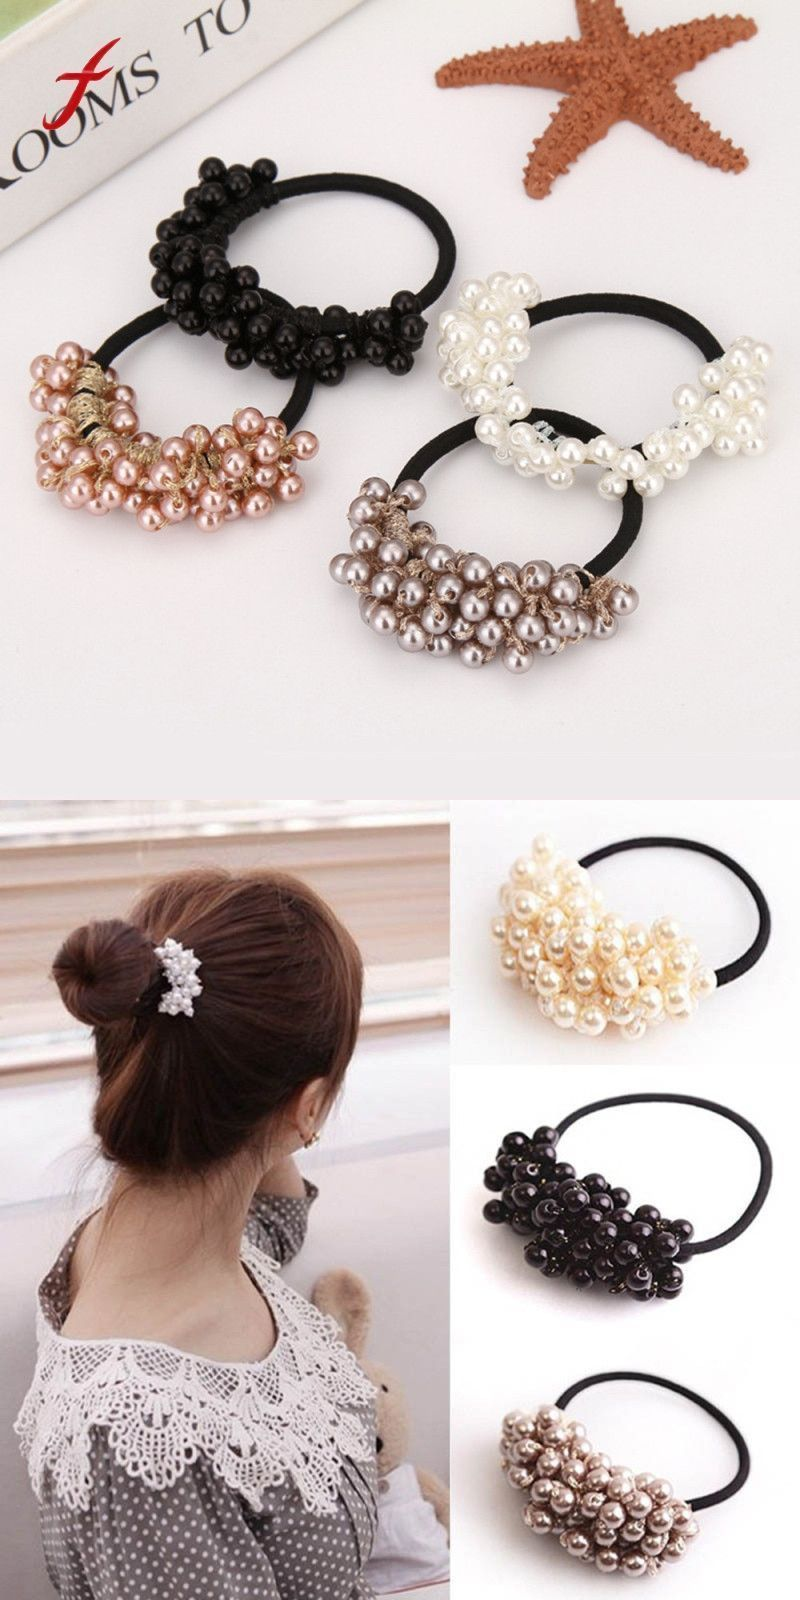 Apparel Accessories Lovely Luxury Pearls Hairpins Hair Ornaments Trendy Hair Clip Shiny Rhinestone Crab Hair Claws For Women Girl Accessories Headwear